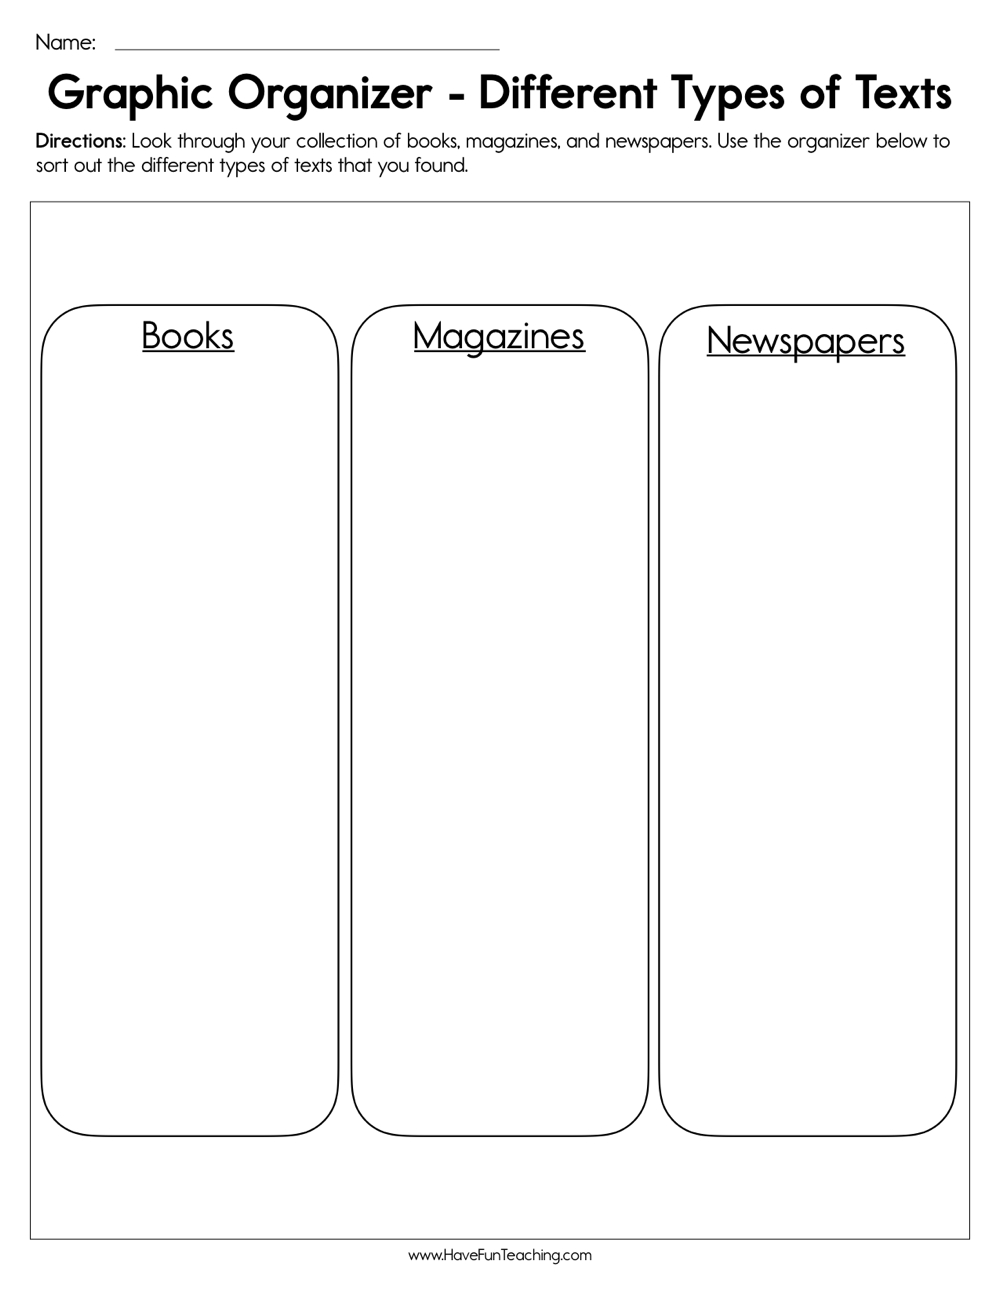 Different Types of Text Graphic Organizer Worksheet